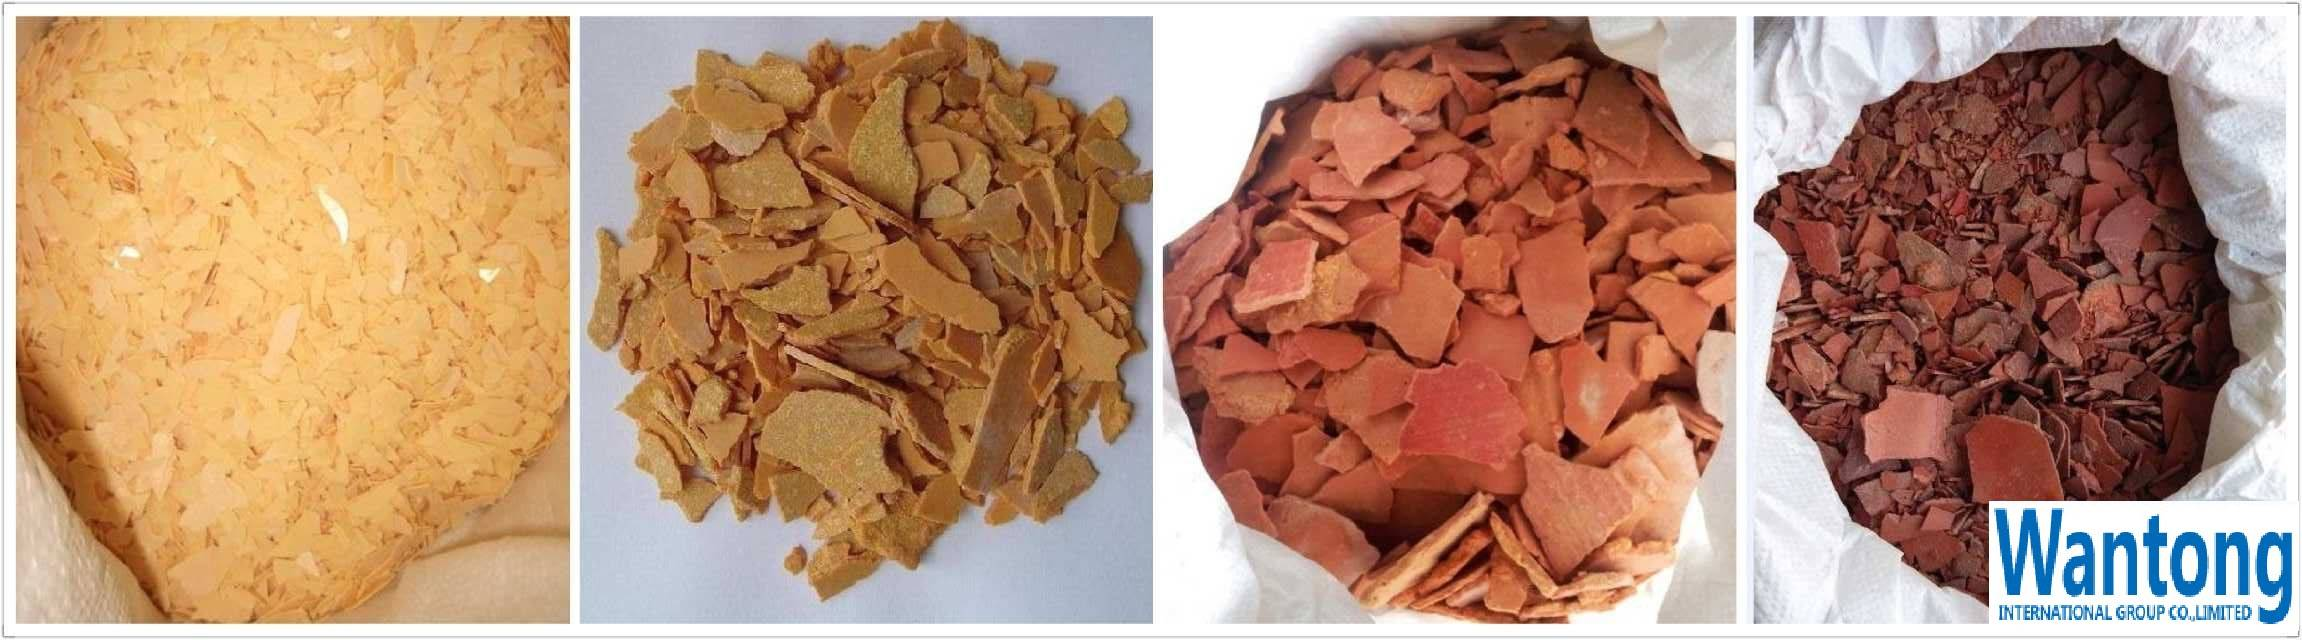 Sodium Sulphide Yellow and Red Flakes 10ppm,15ppm,20ppm,30ppm,80ppm,150ppm,300ppm,500ppm,1500ppm